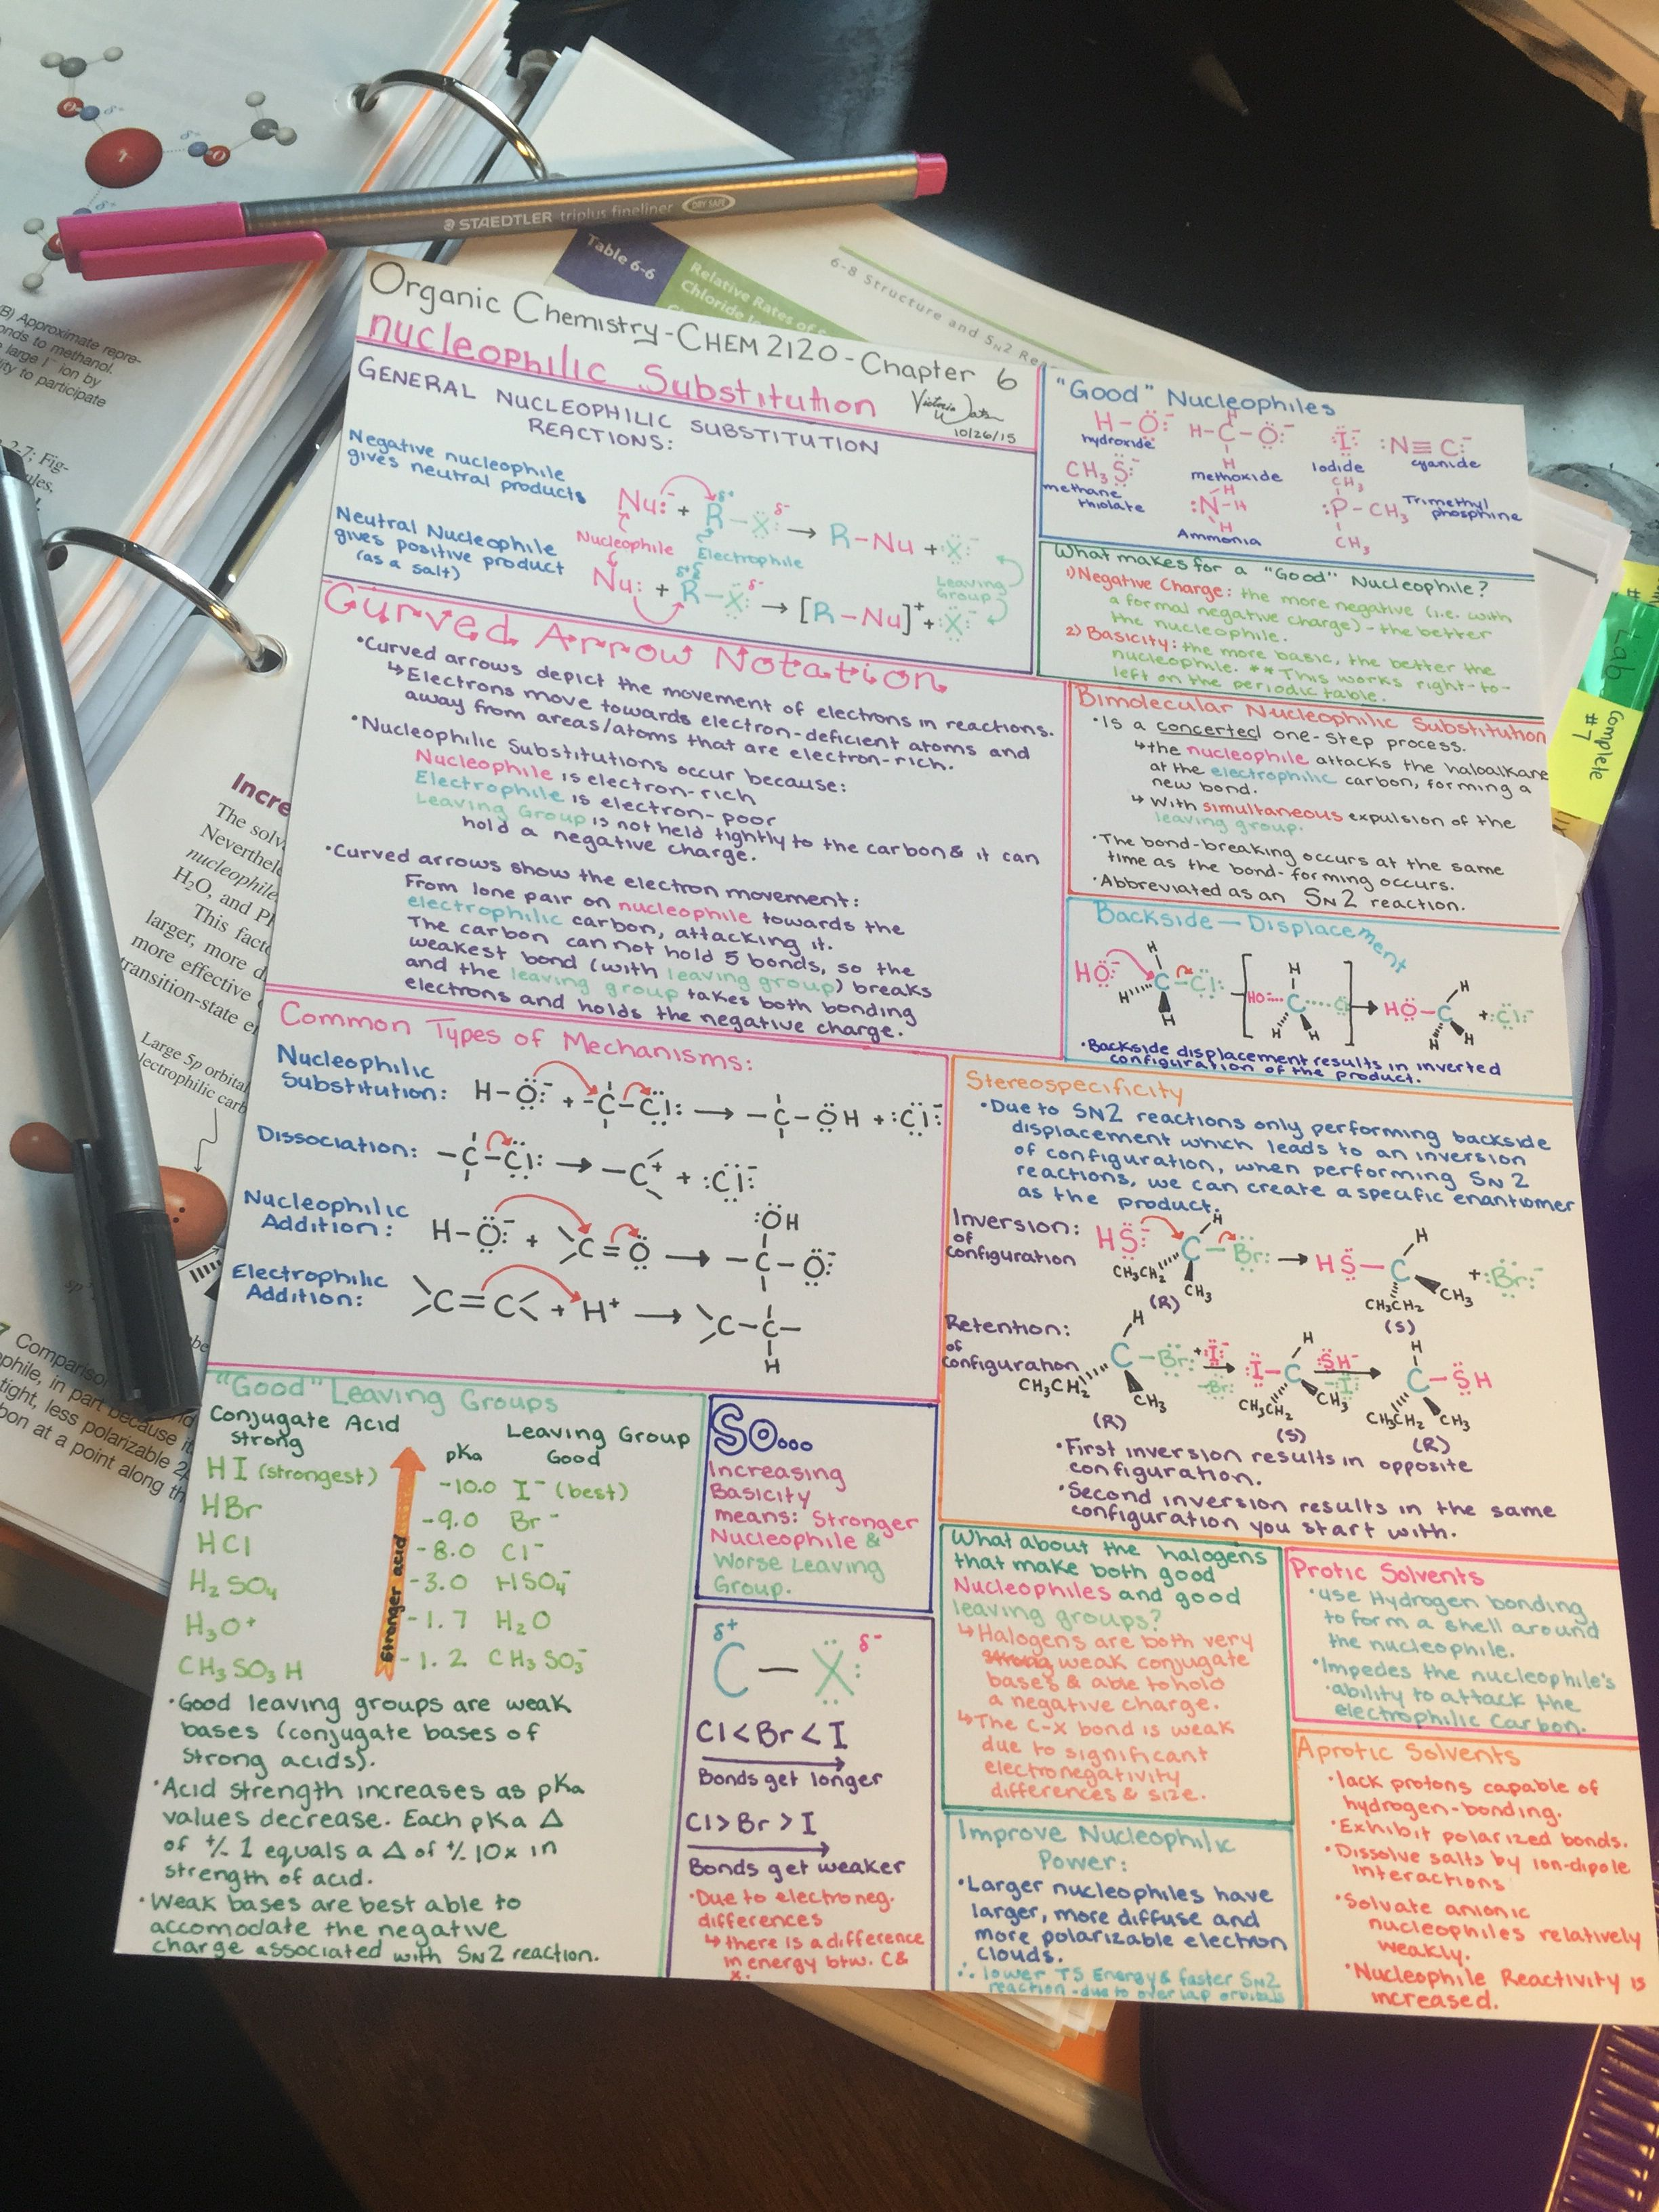 Organic Chemistry - Nucleophilic Substitution SN2 - partial notes 10